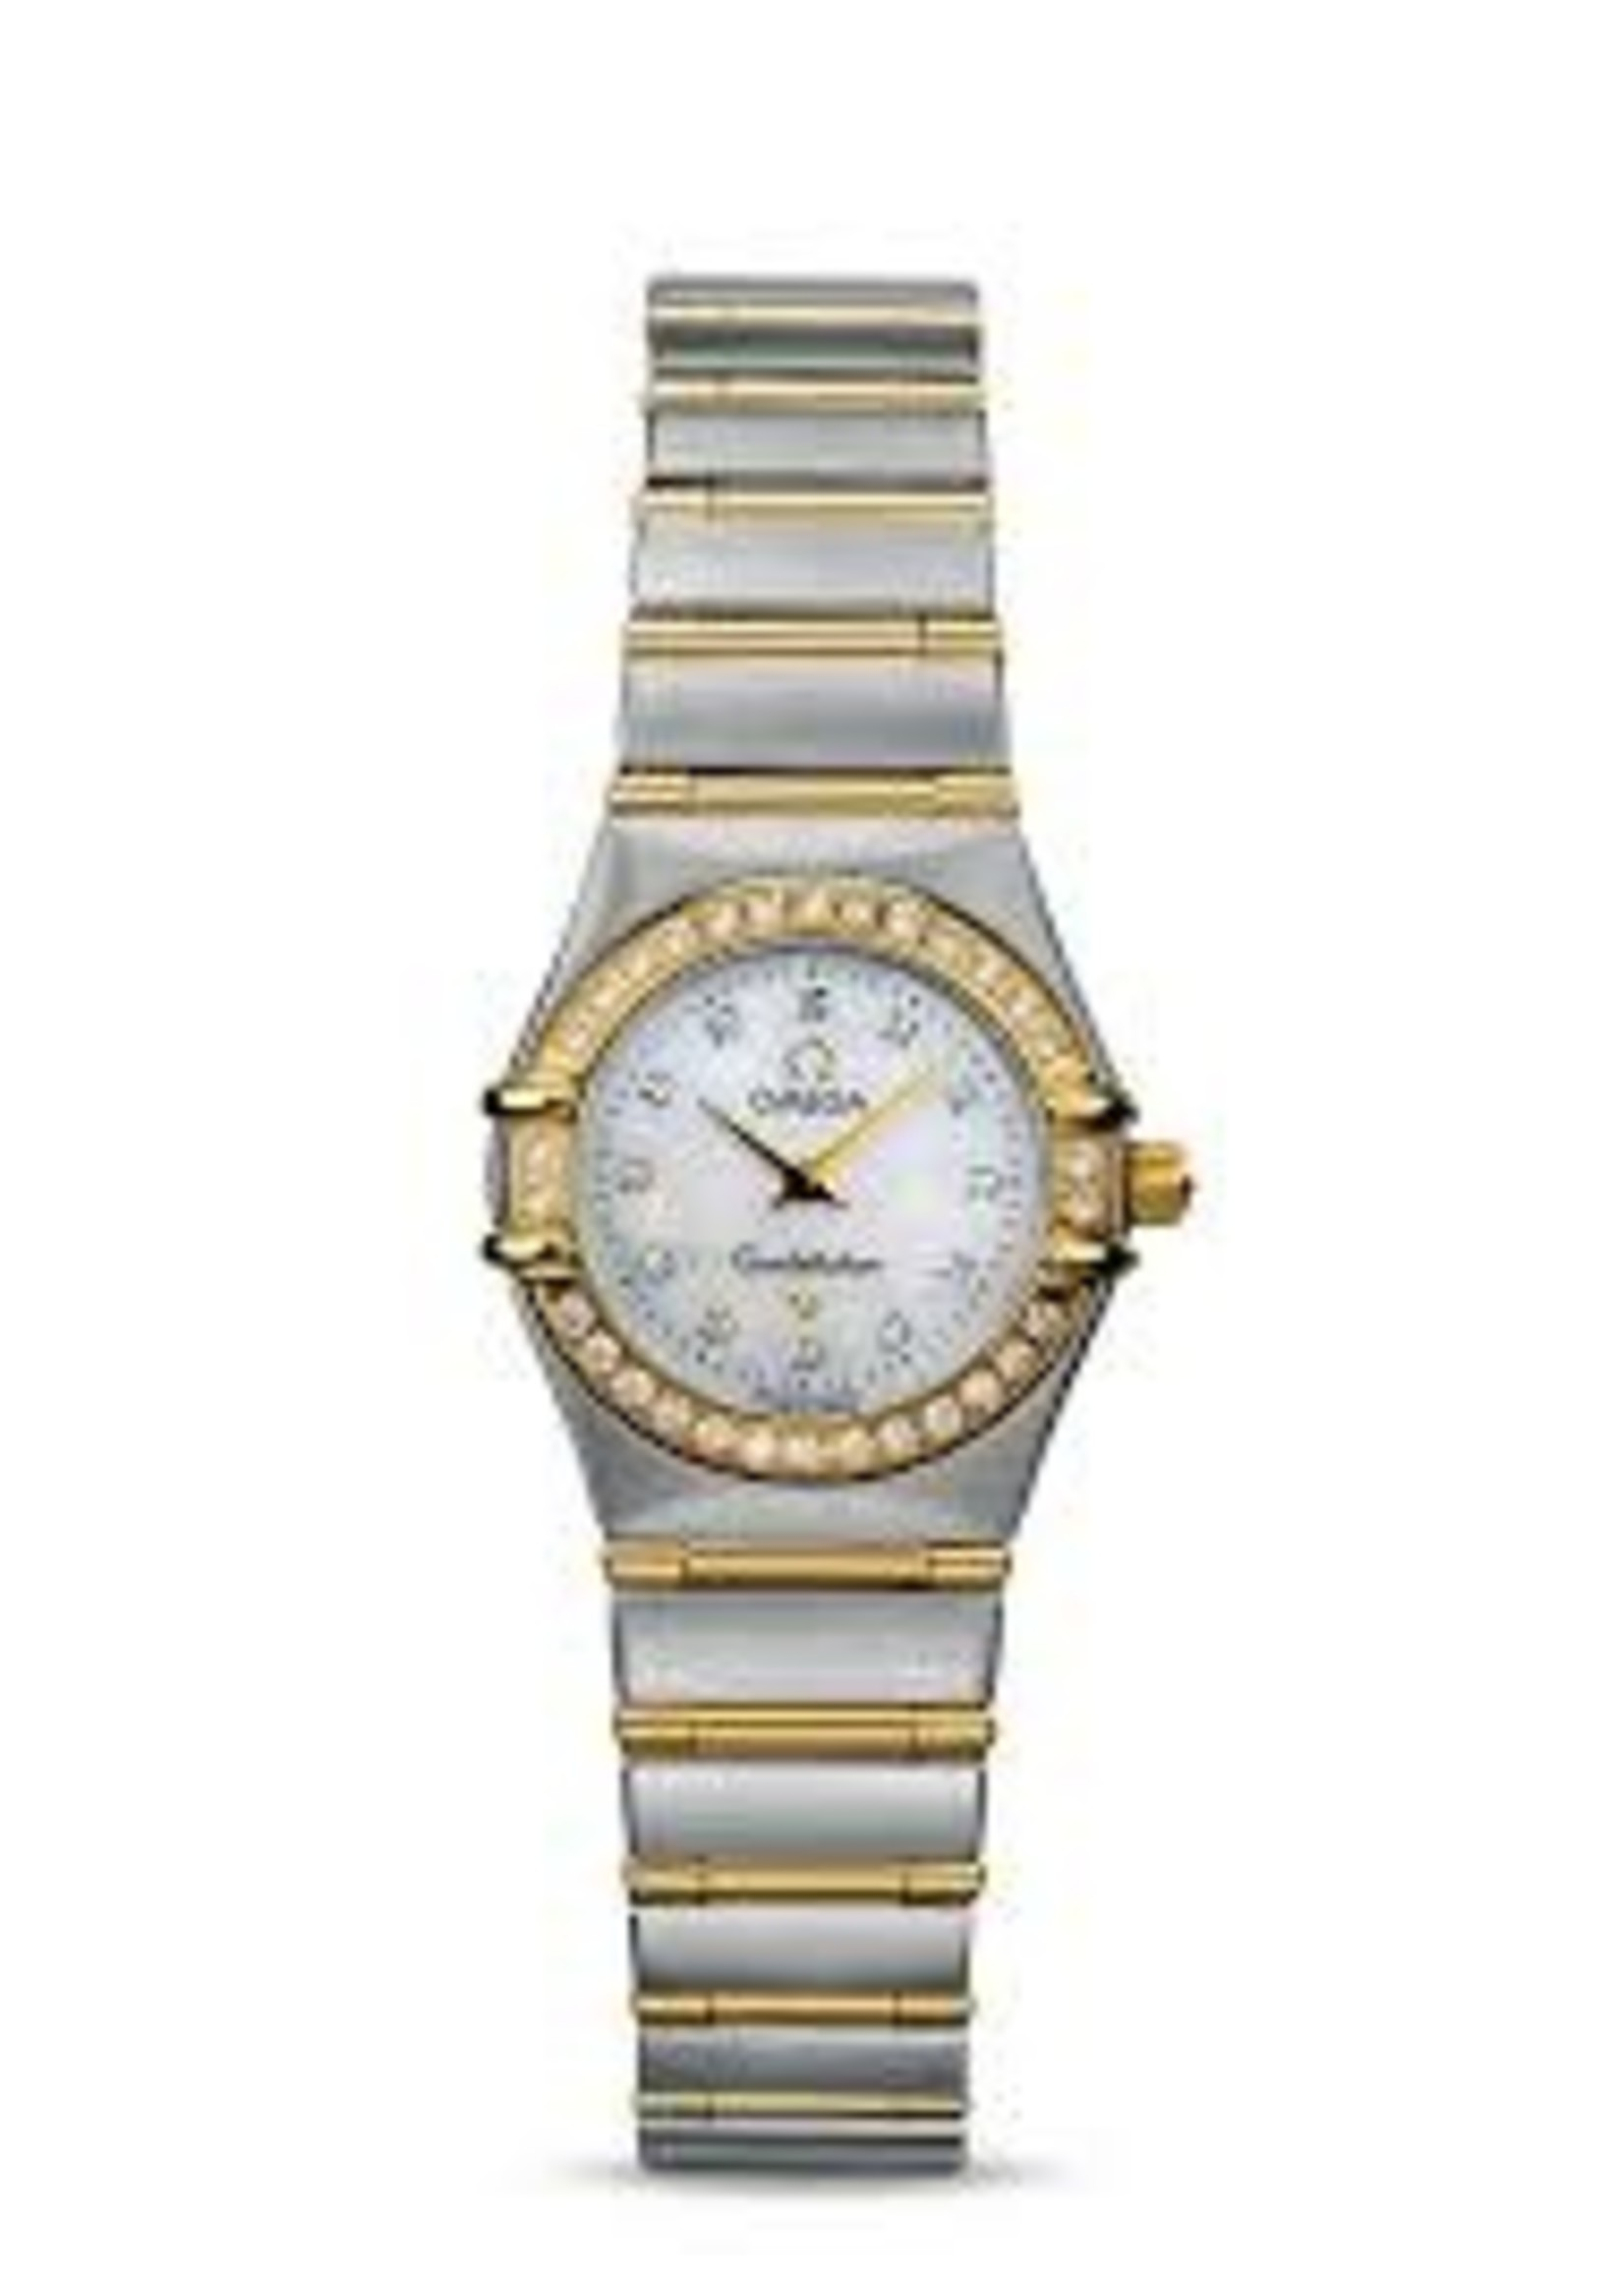 Omega Watches OMEGA CONSTELLATION (2020 B+P) #12677500